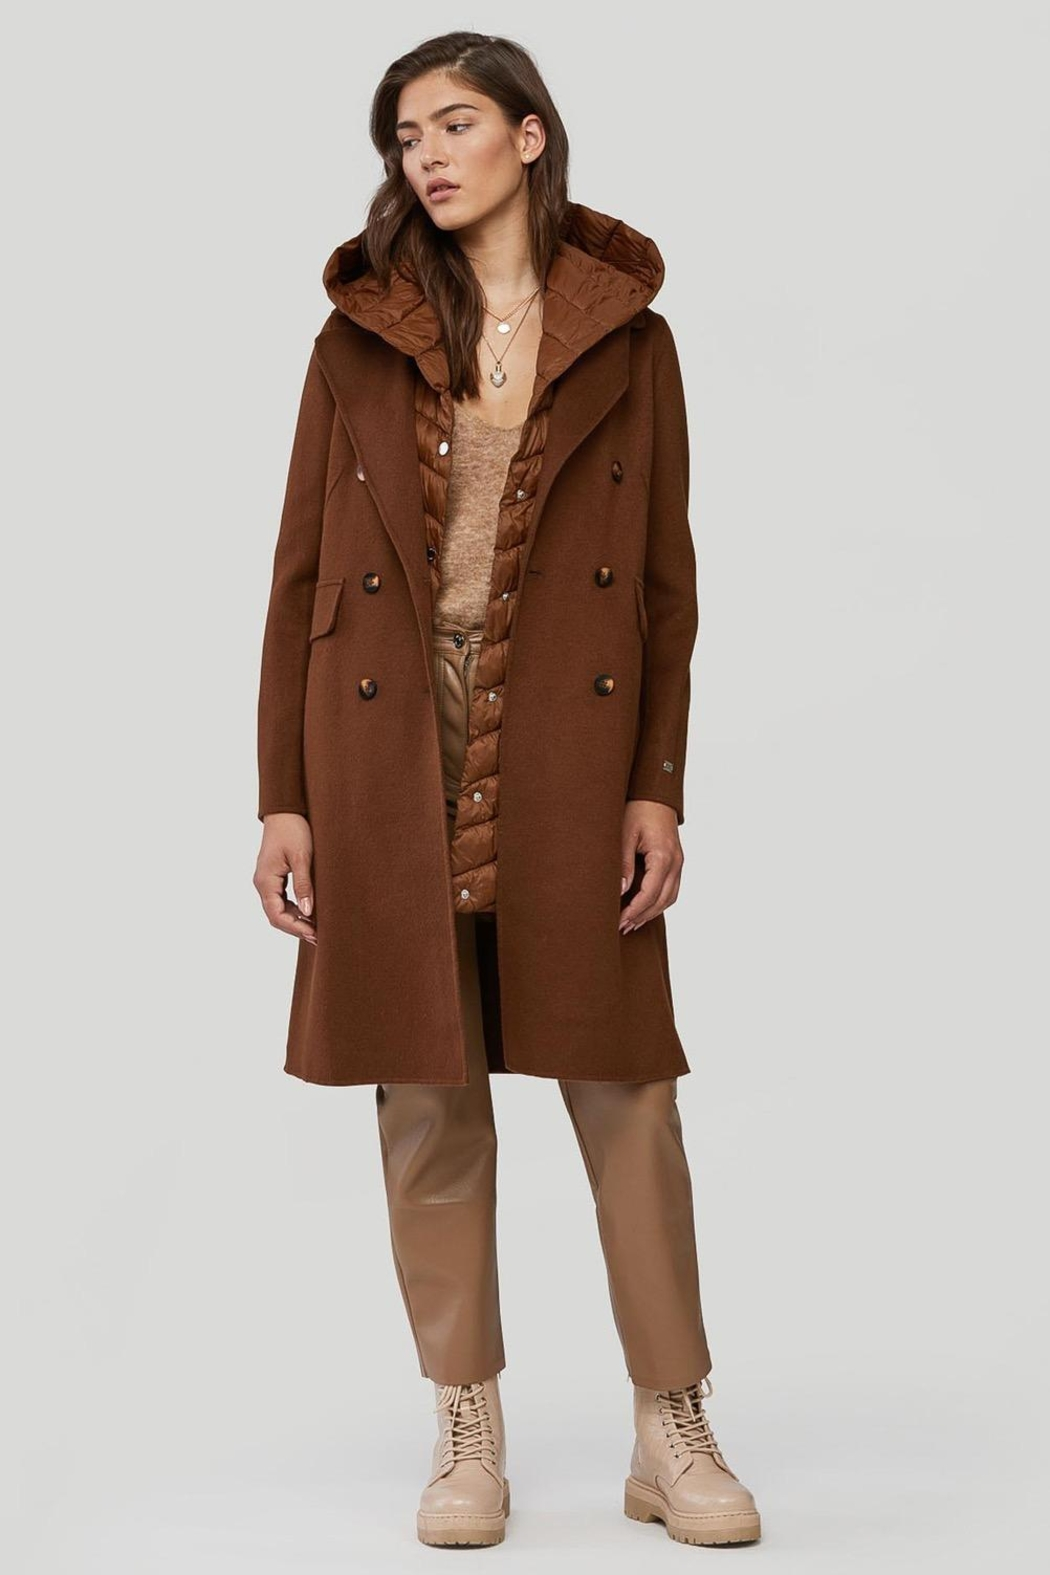 Soia & Kyo Viola-N Double-Face Chestnut Wool Coat - Main Image